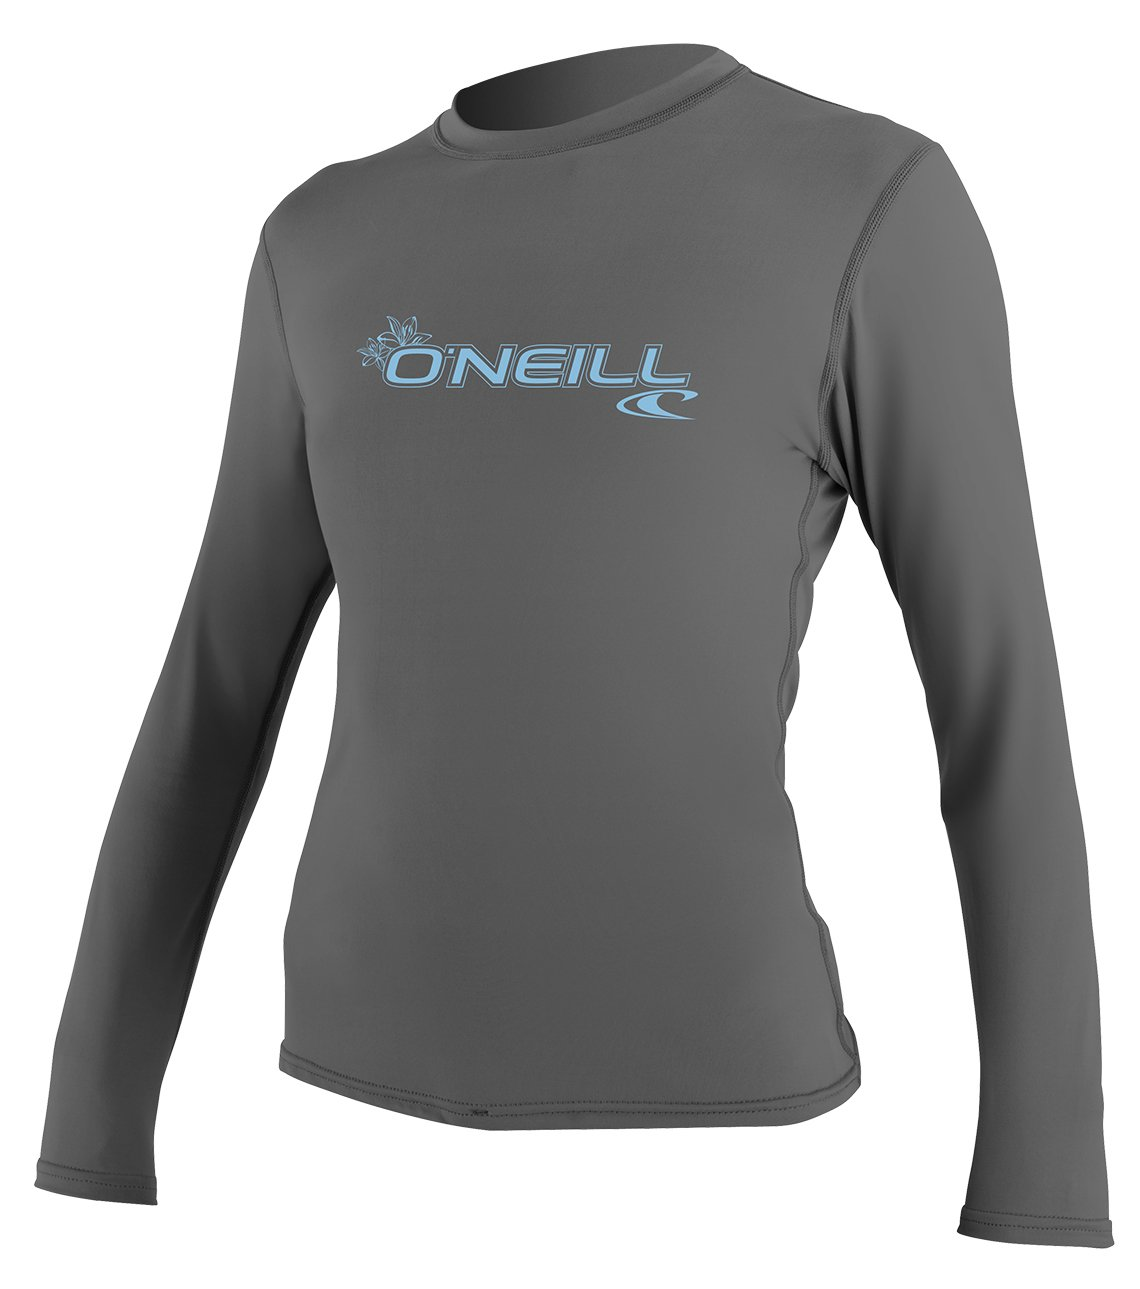 O'Neill Women's Basic Skins Upf 50+ Long Sleeve Sun Shirt, Graphite, X-Small by O'Neill Wetsuits